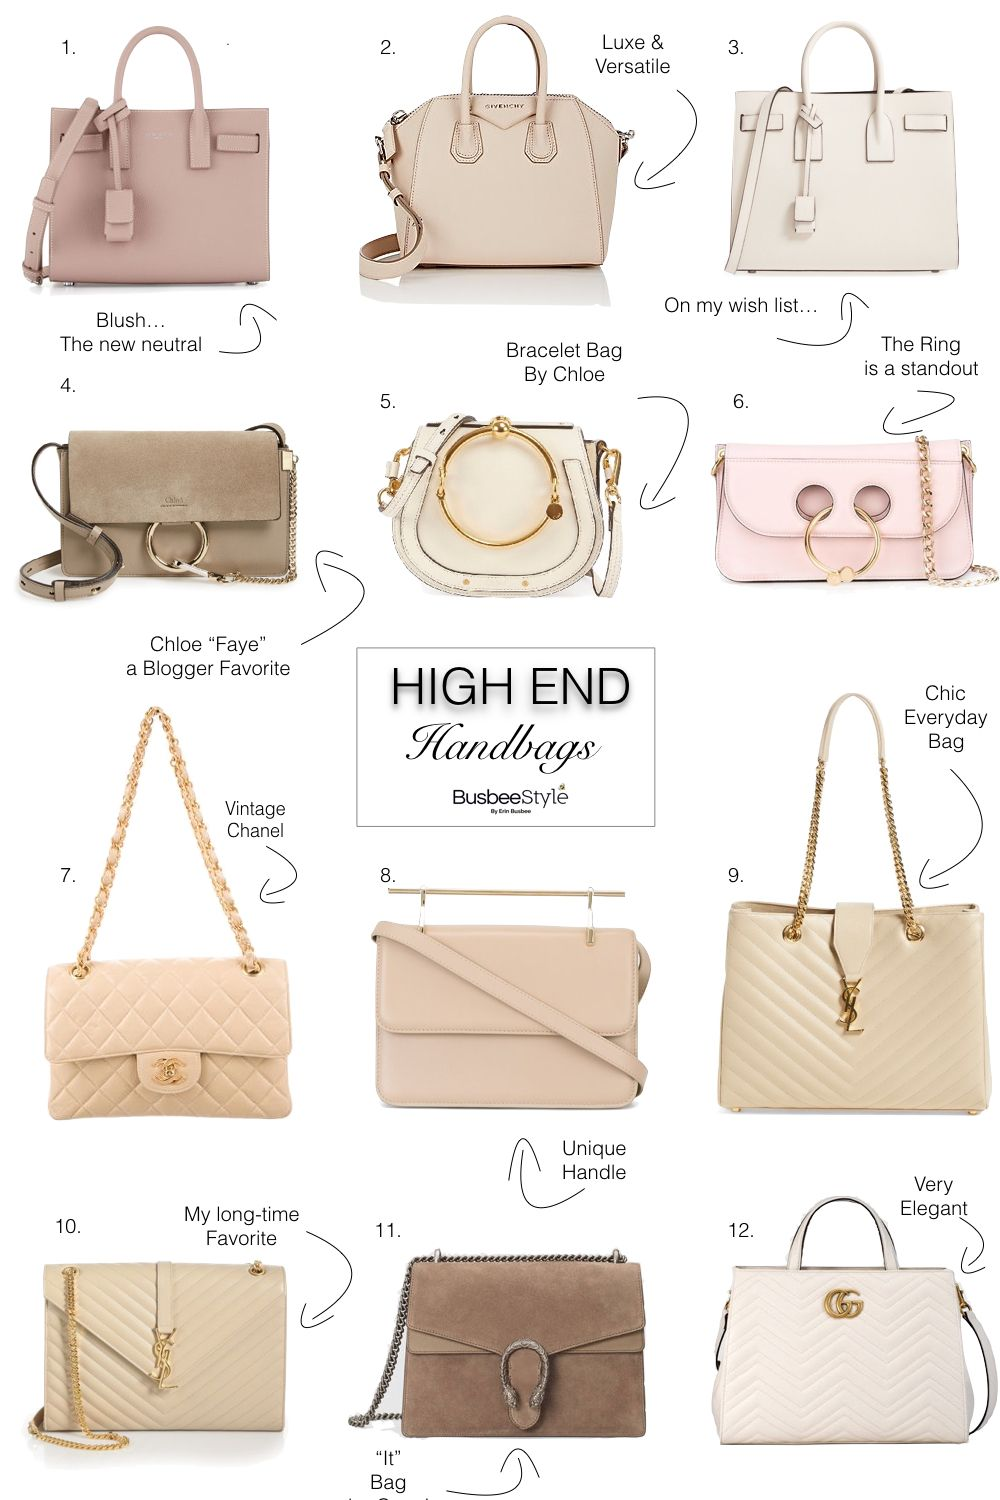 f11d0fb8c 9 Prodigious Useful Tips: Hand Bags Sewing Handbags hand bags leather  products.Shoulder Hand Bags Kate Spade hand bags and purses designer.